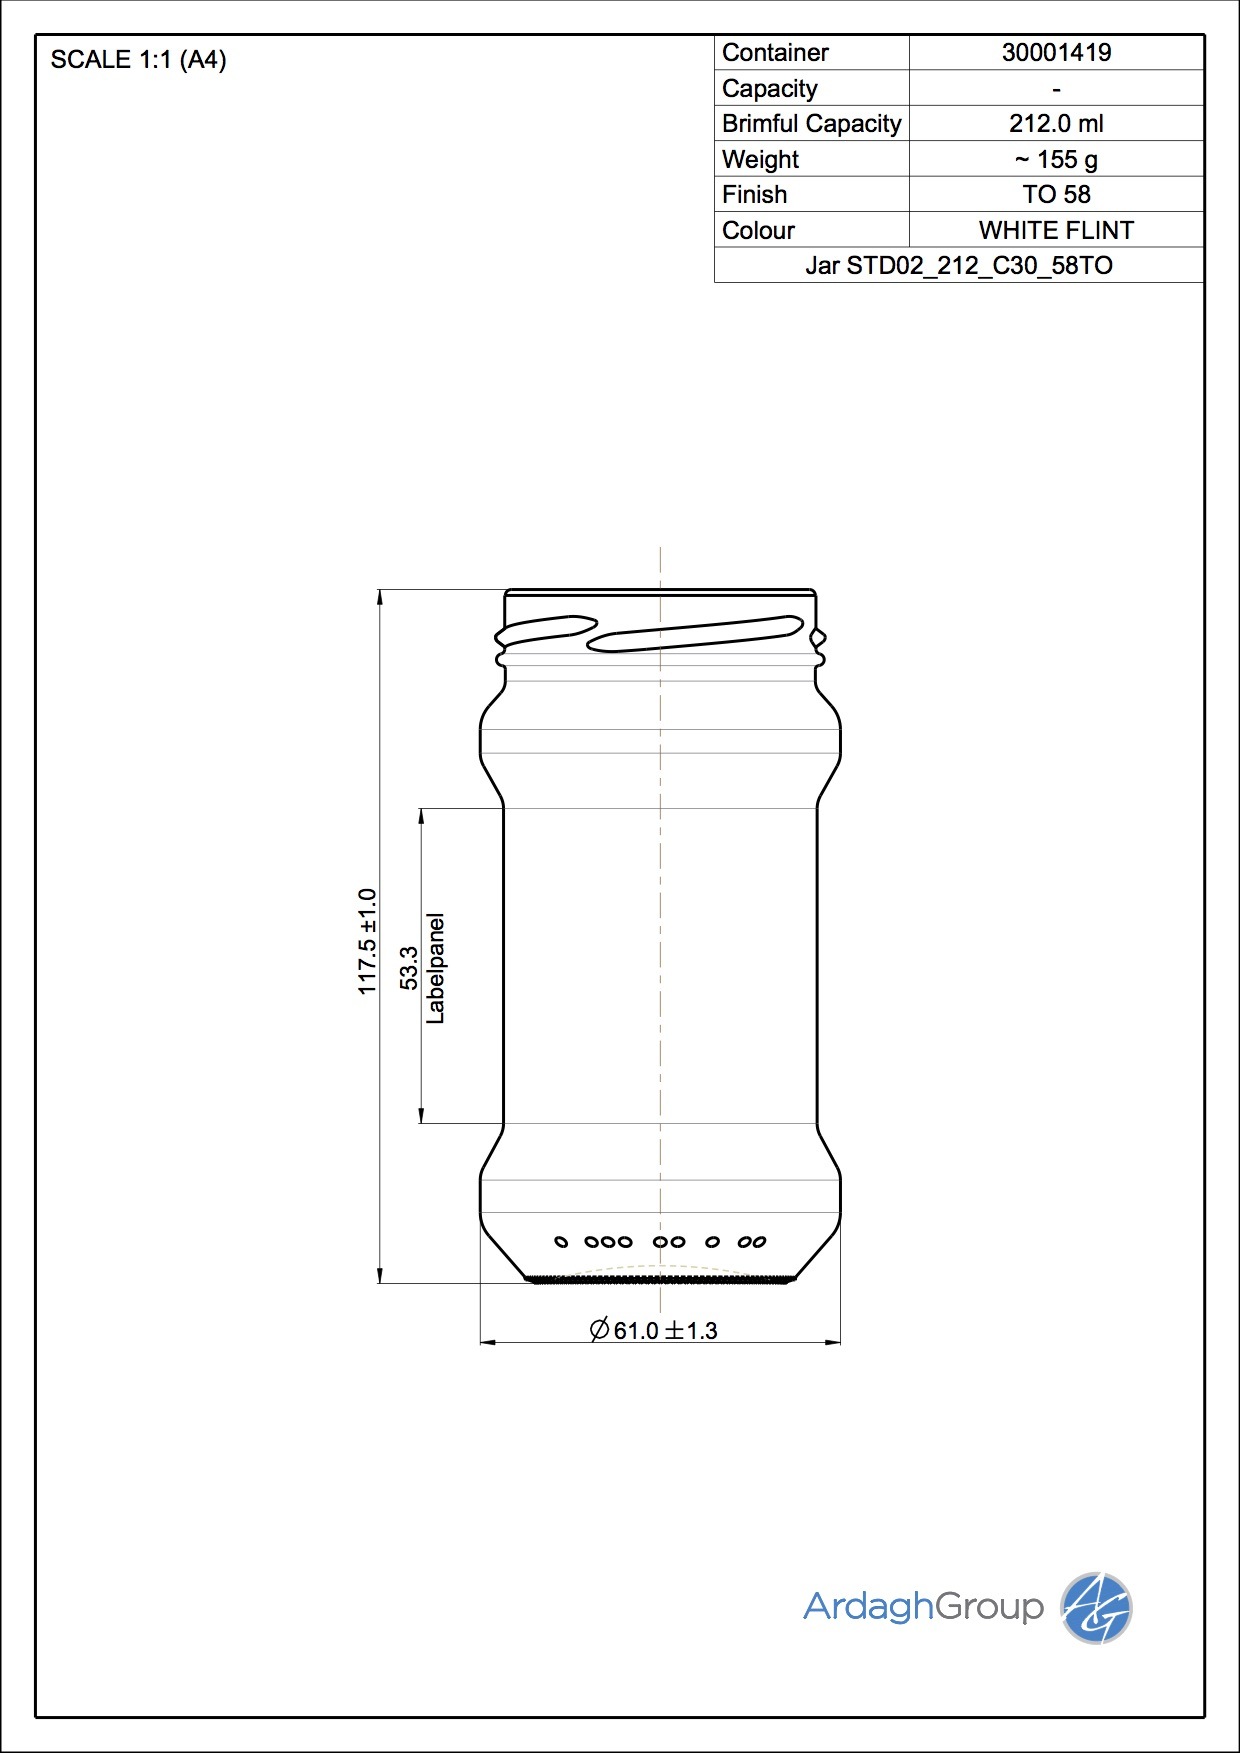 Jar STD02 212 C30 58TO